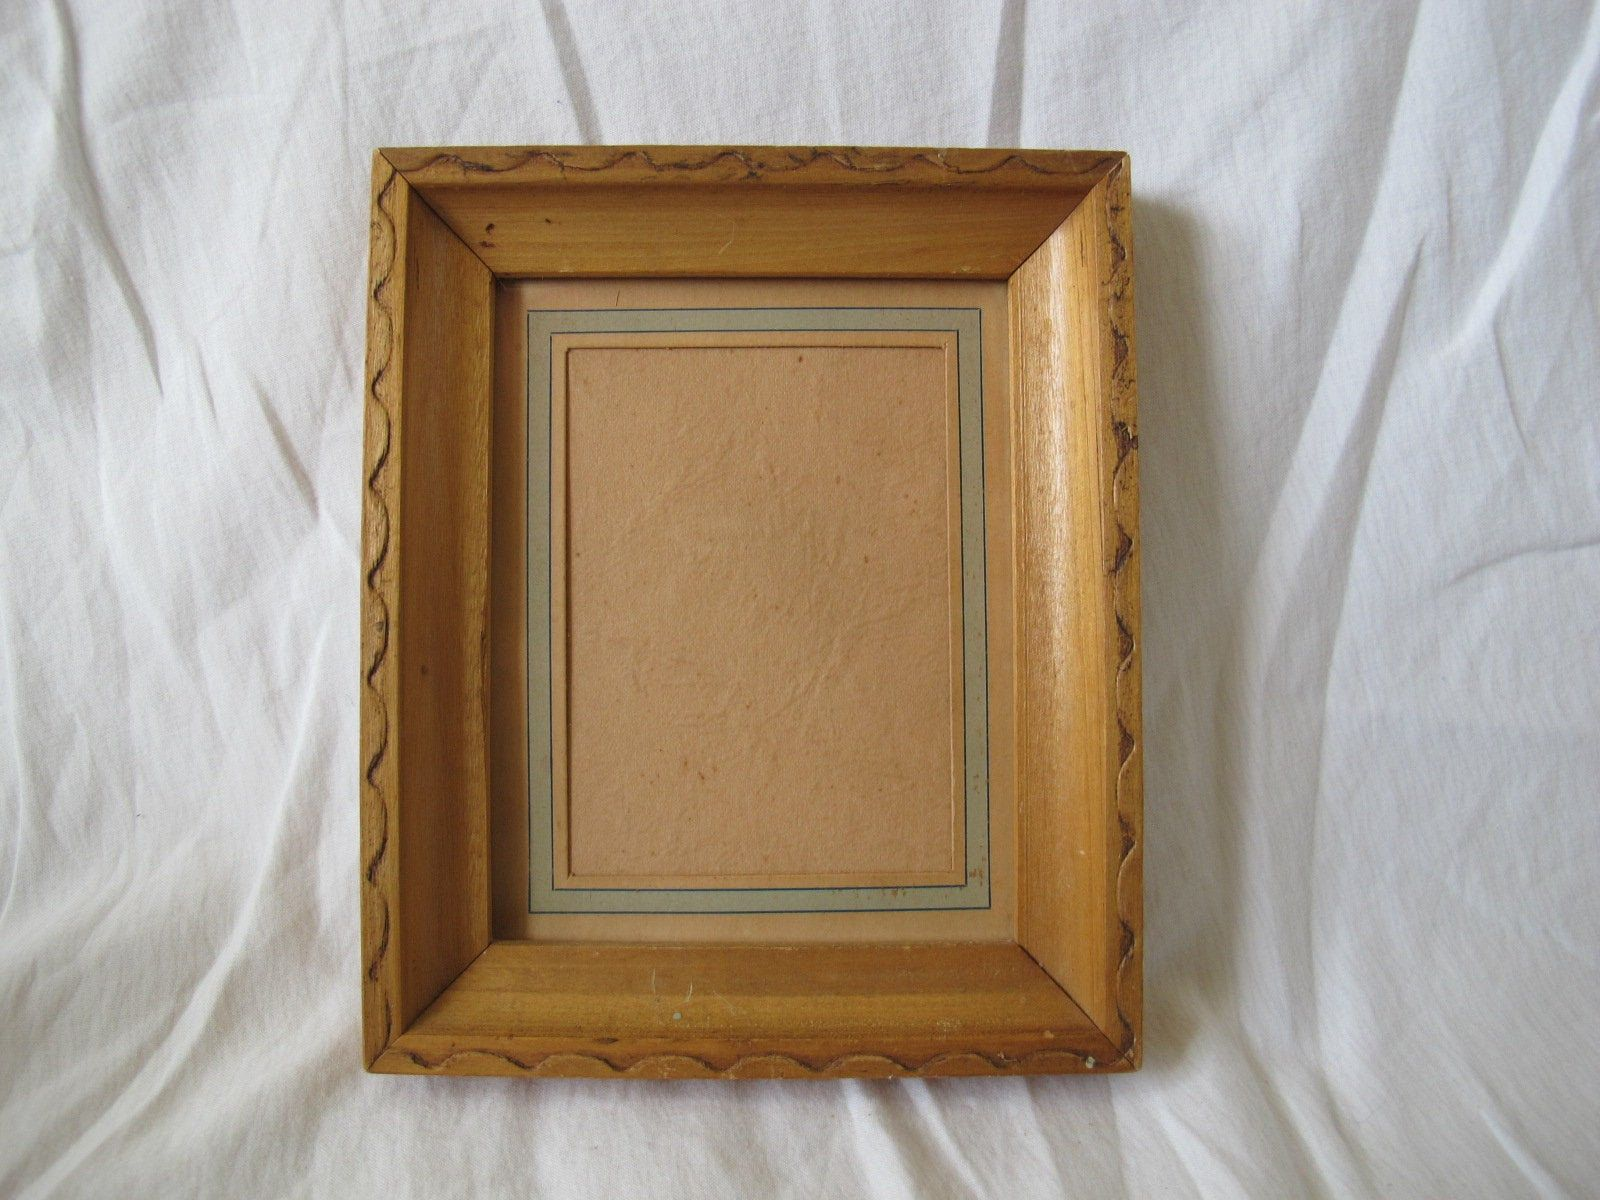 Vintage Blonde Carved Wood Frame 4 3 4 By 3 3 4 Inch Picture Etsy Carved Wood Frame Natural Wood Frames Wood Frame